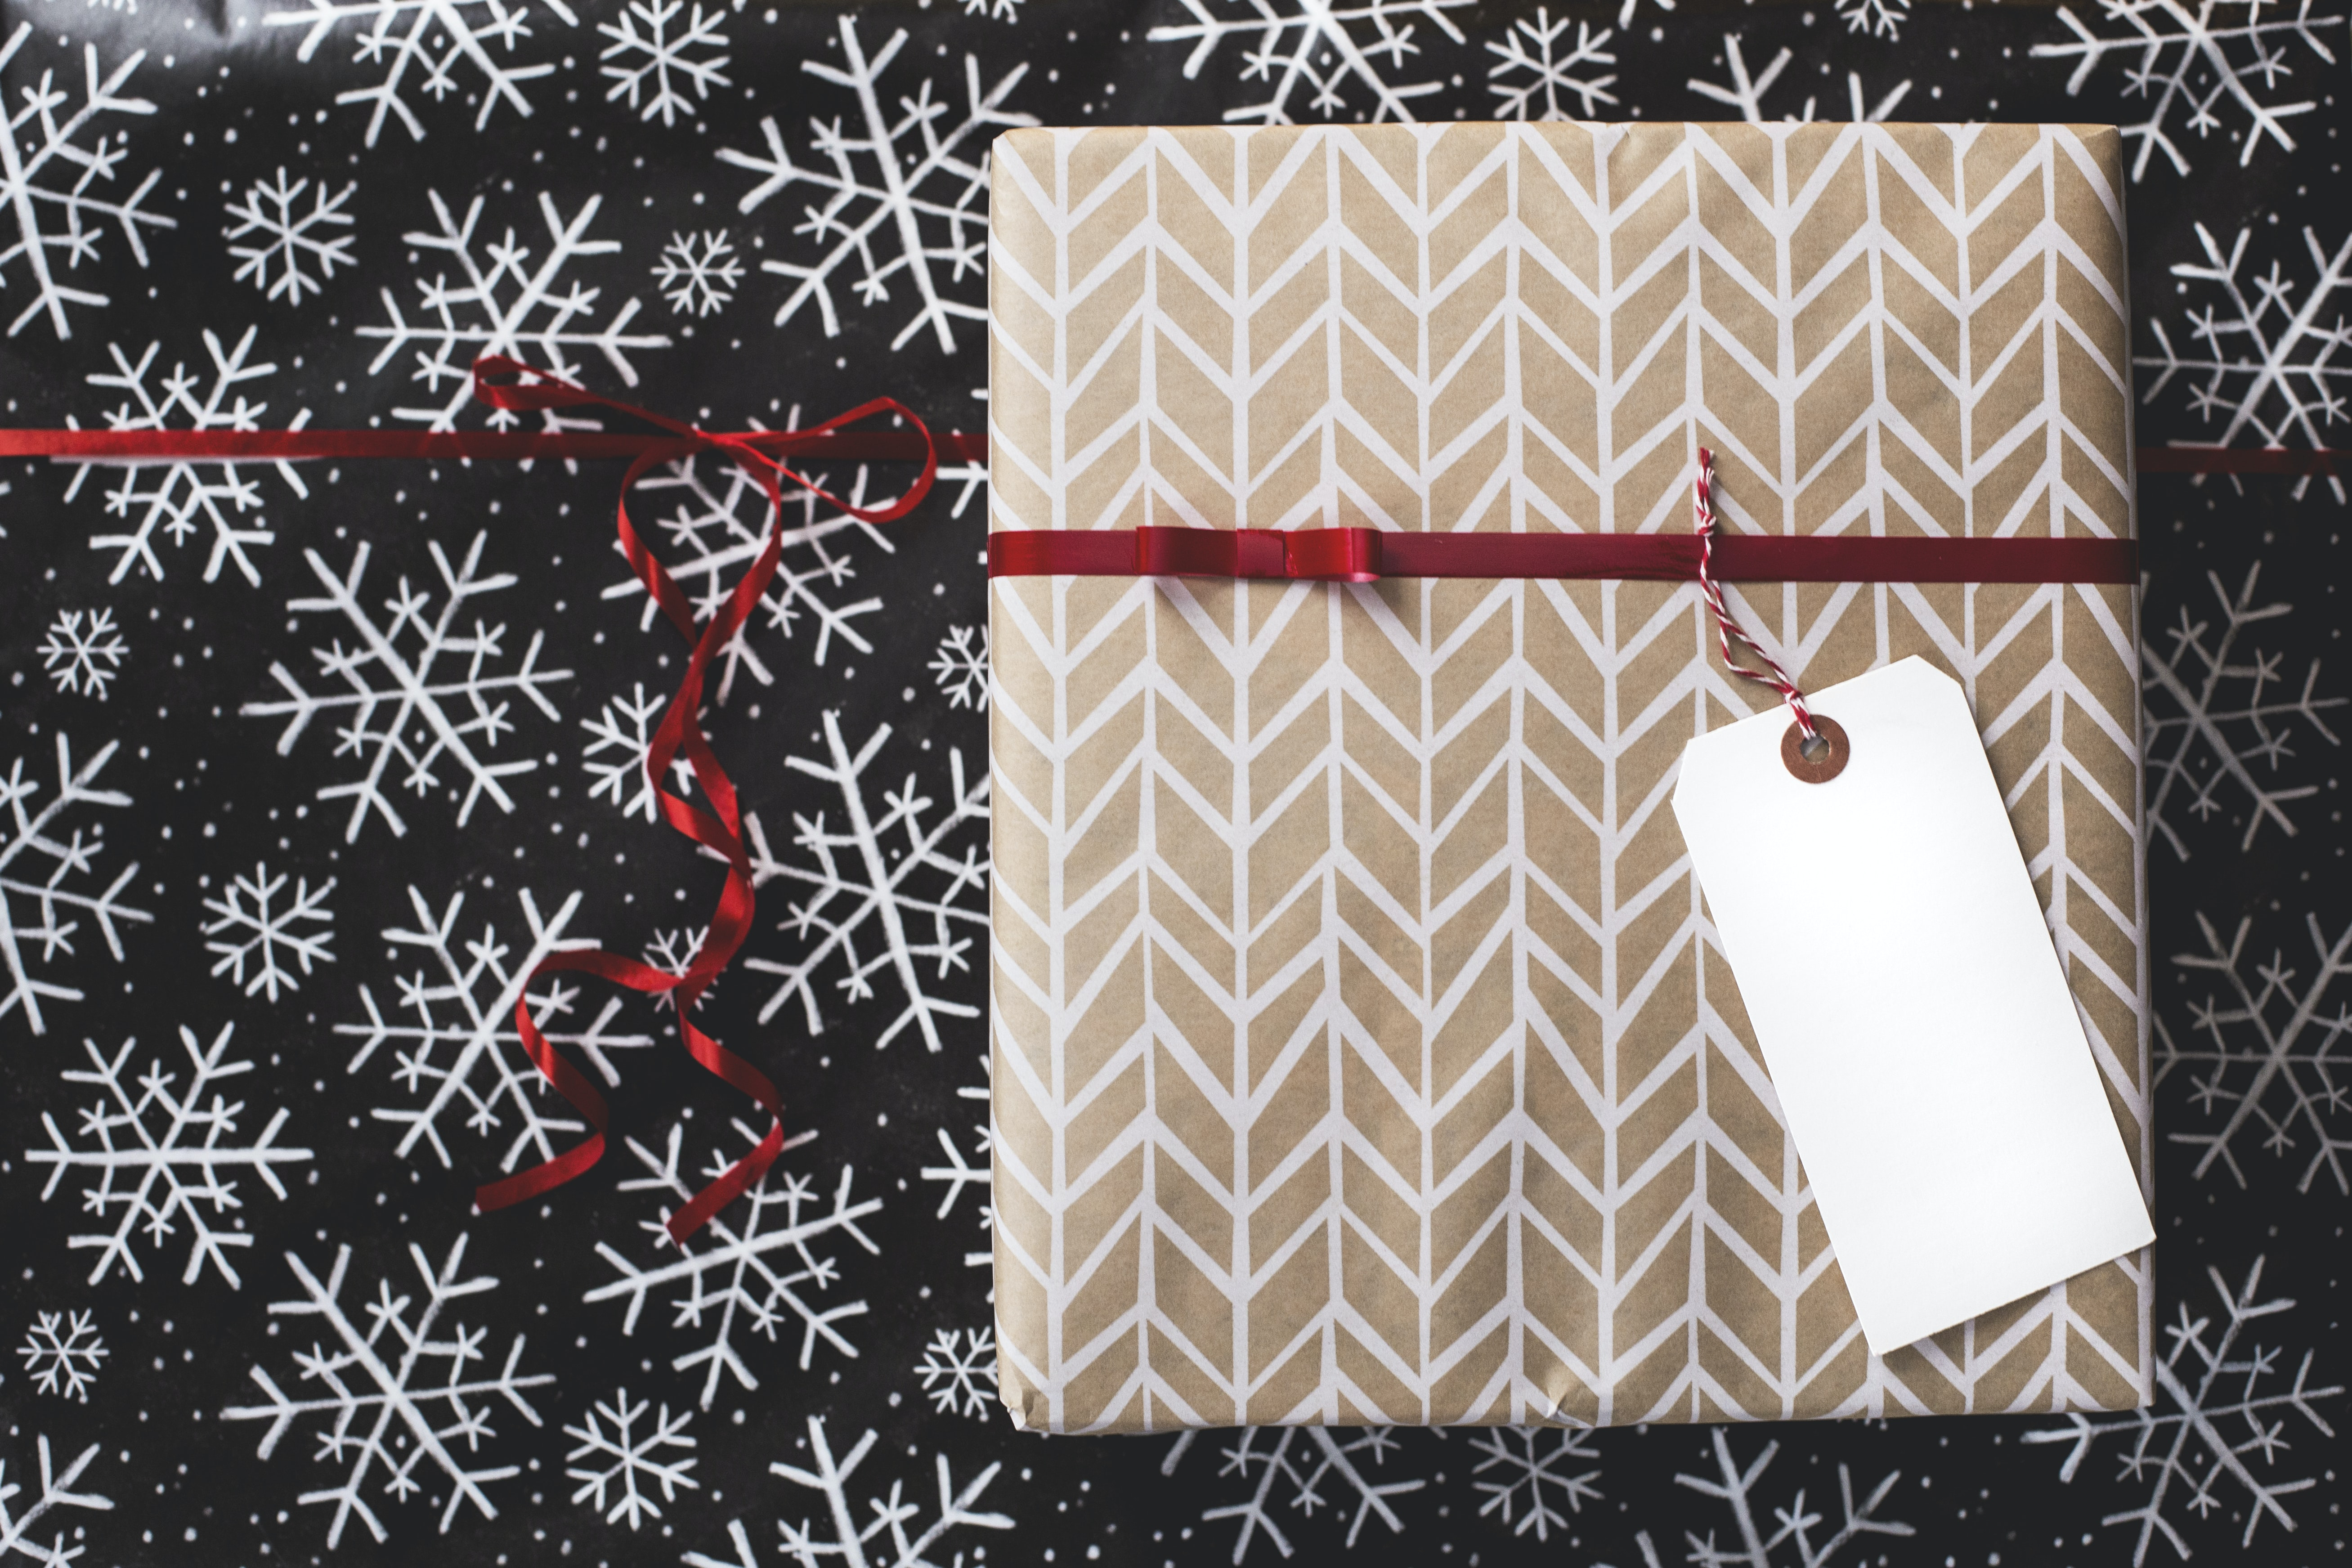 gold and white gift box on white and black fair-isle print surface